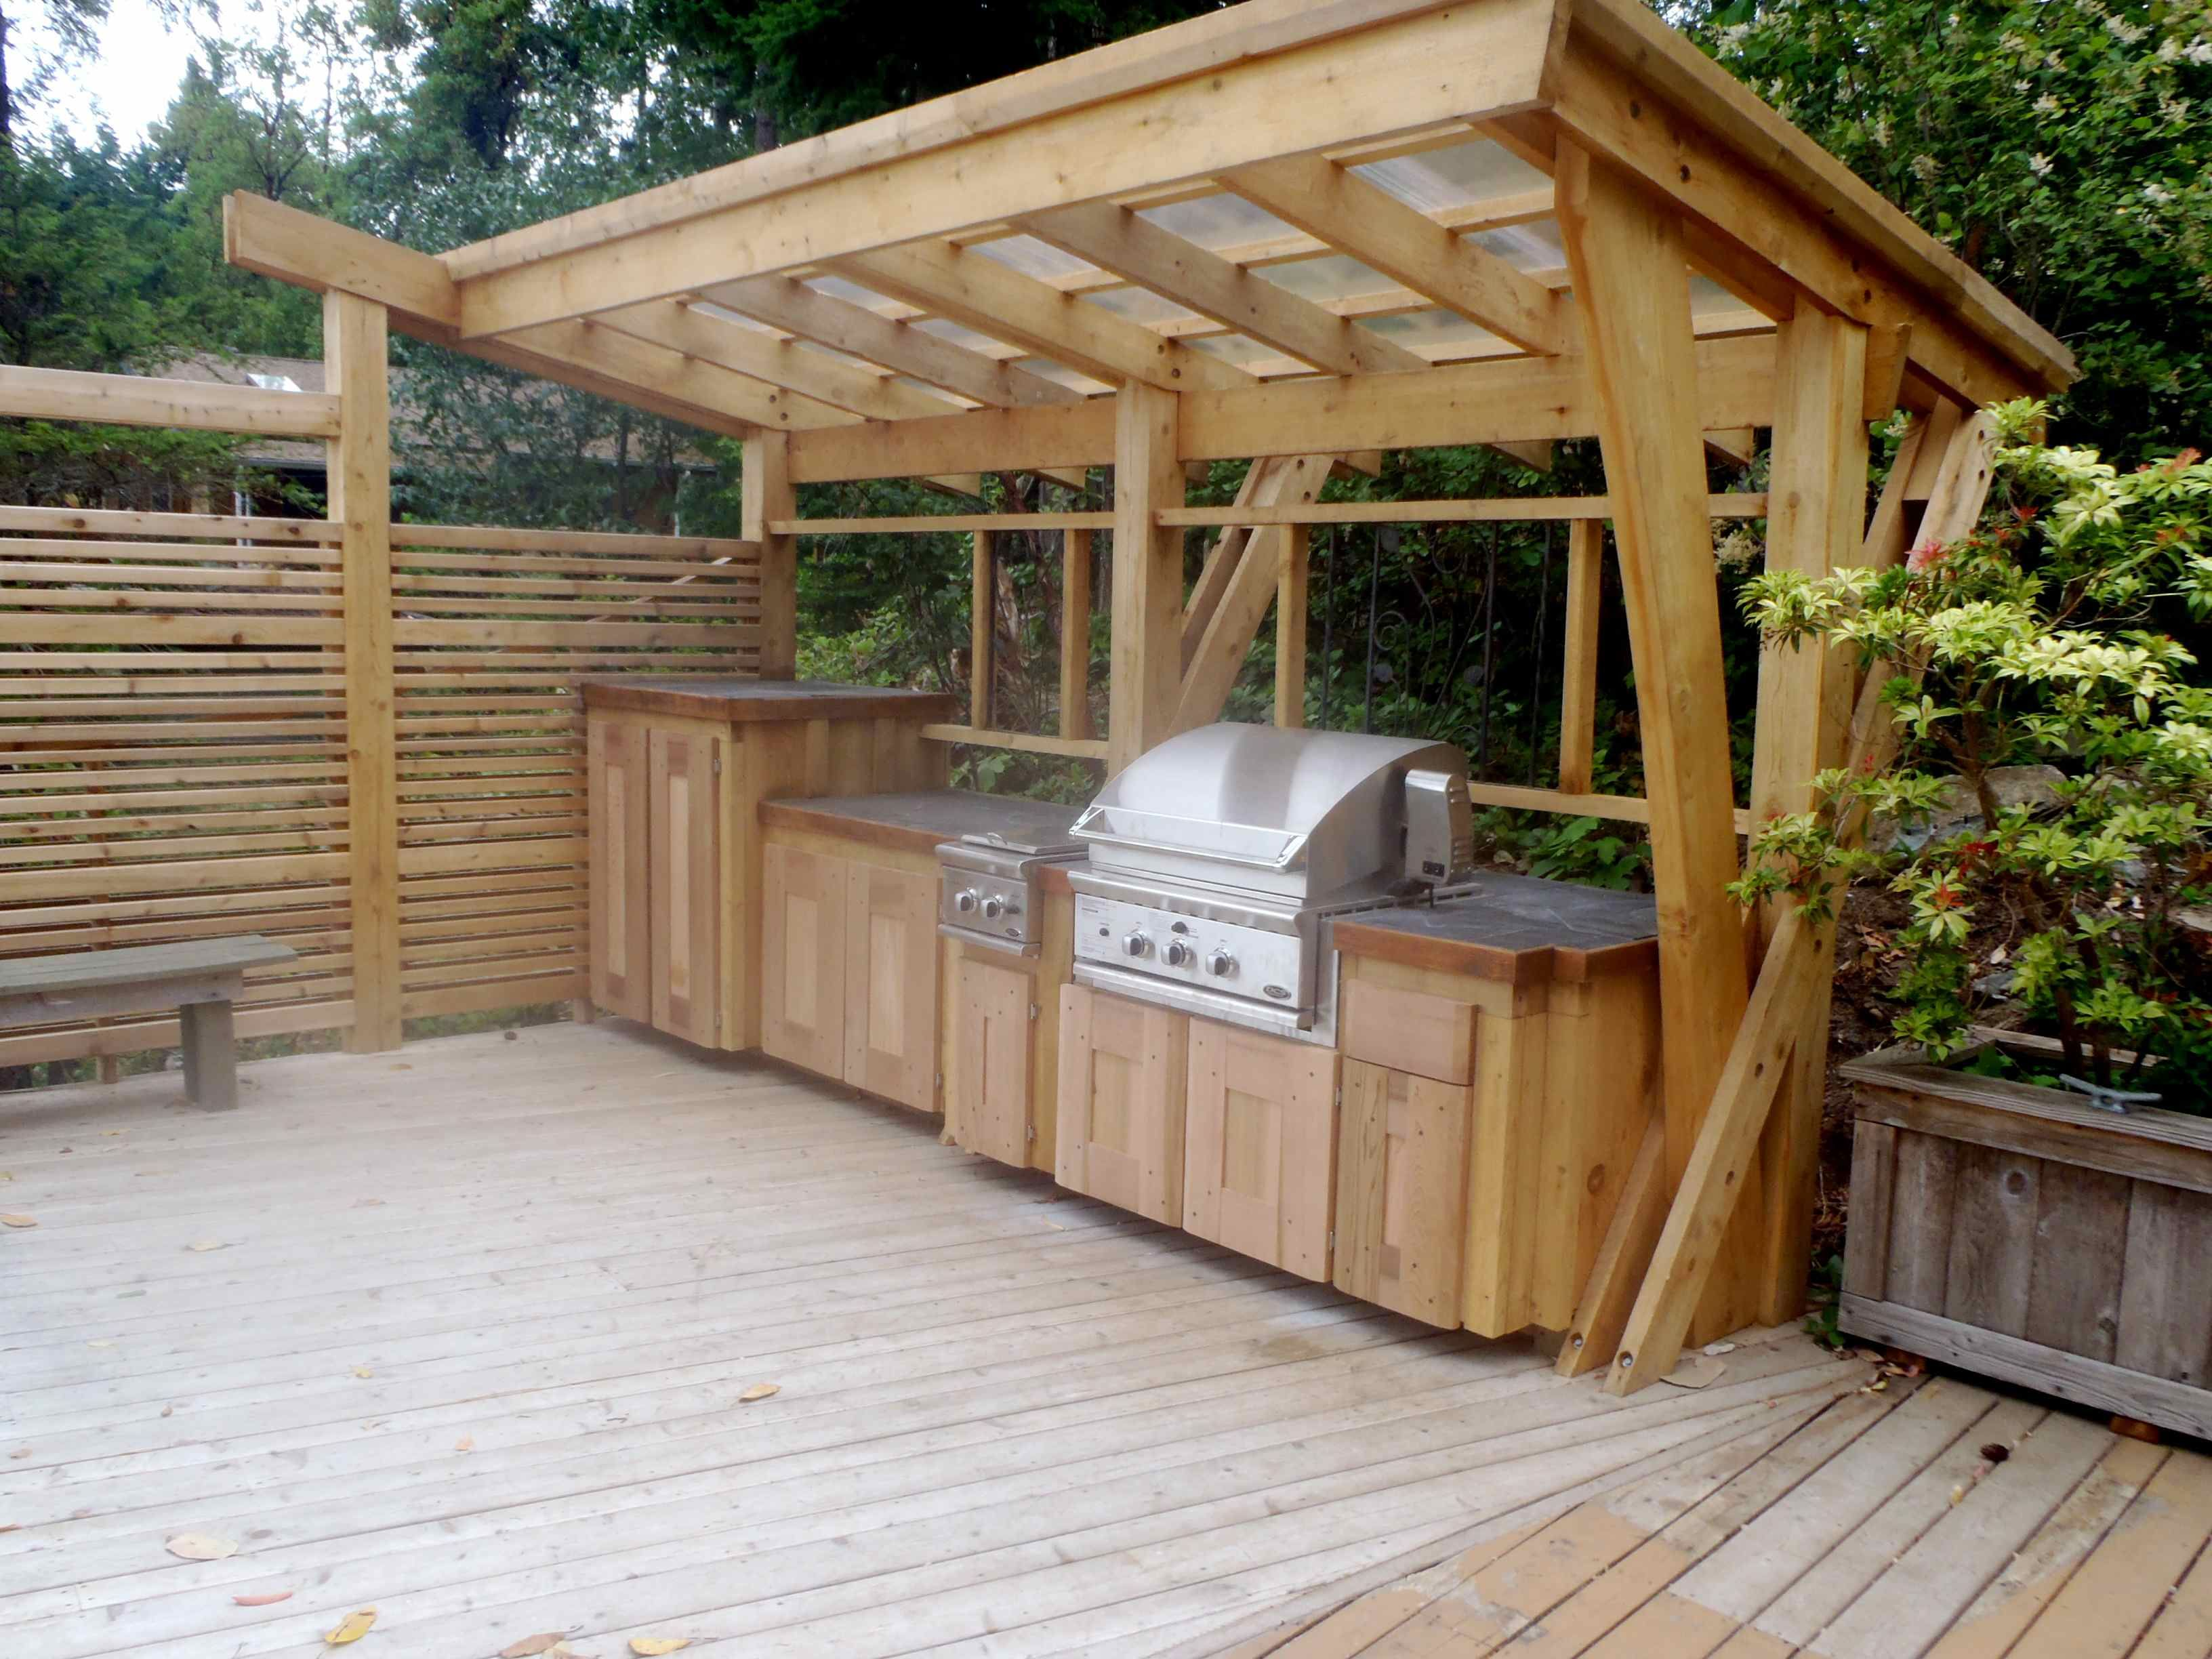 bbq kitchen glad tall drawstring trash bags pin by rosalind trenado on for the home diy outdoor covered kitchens plans small cooking area